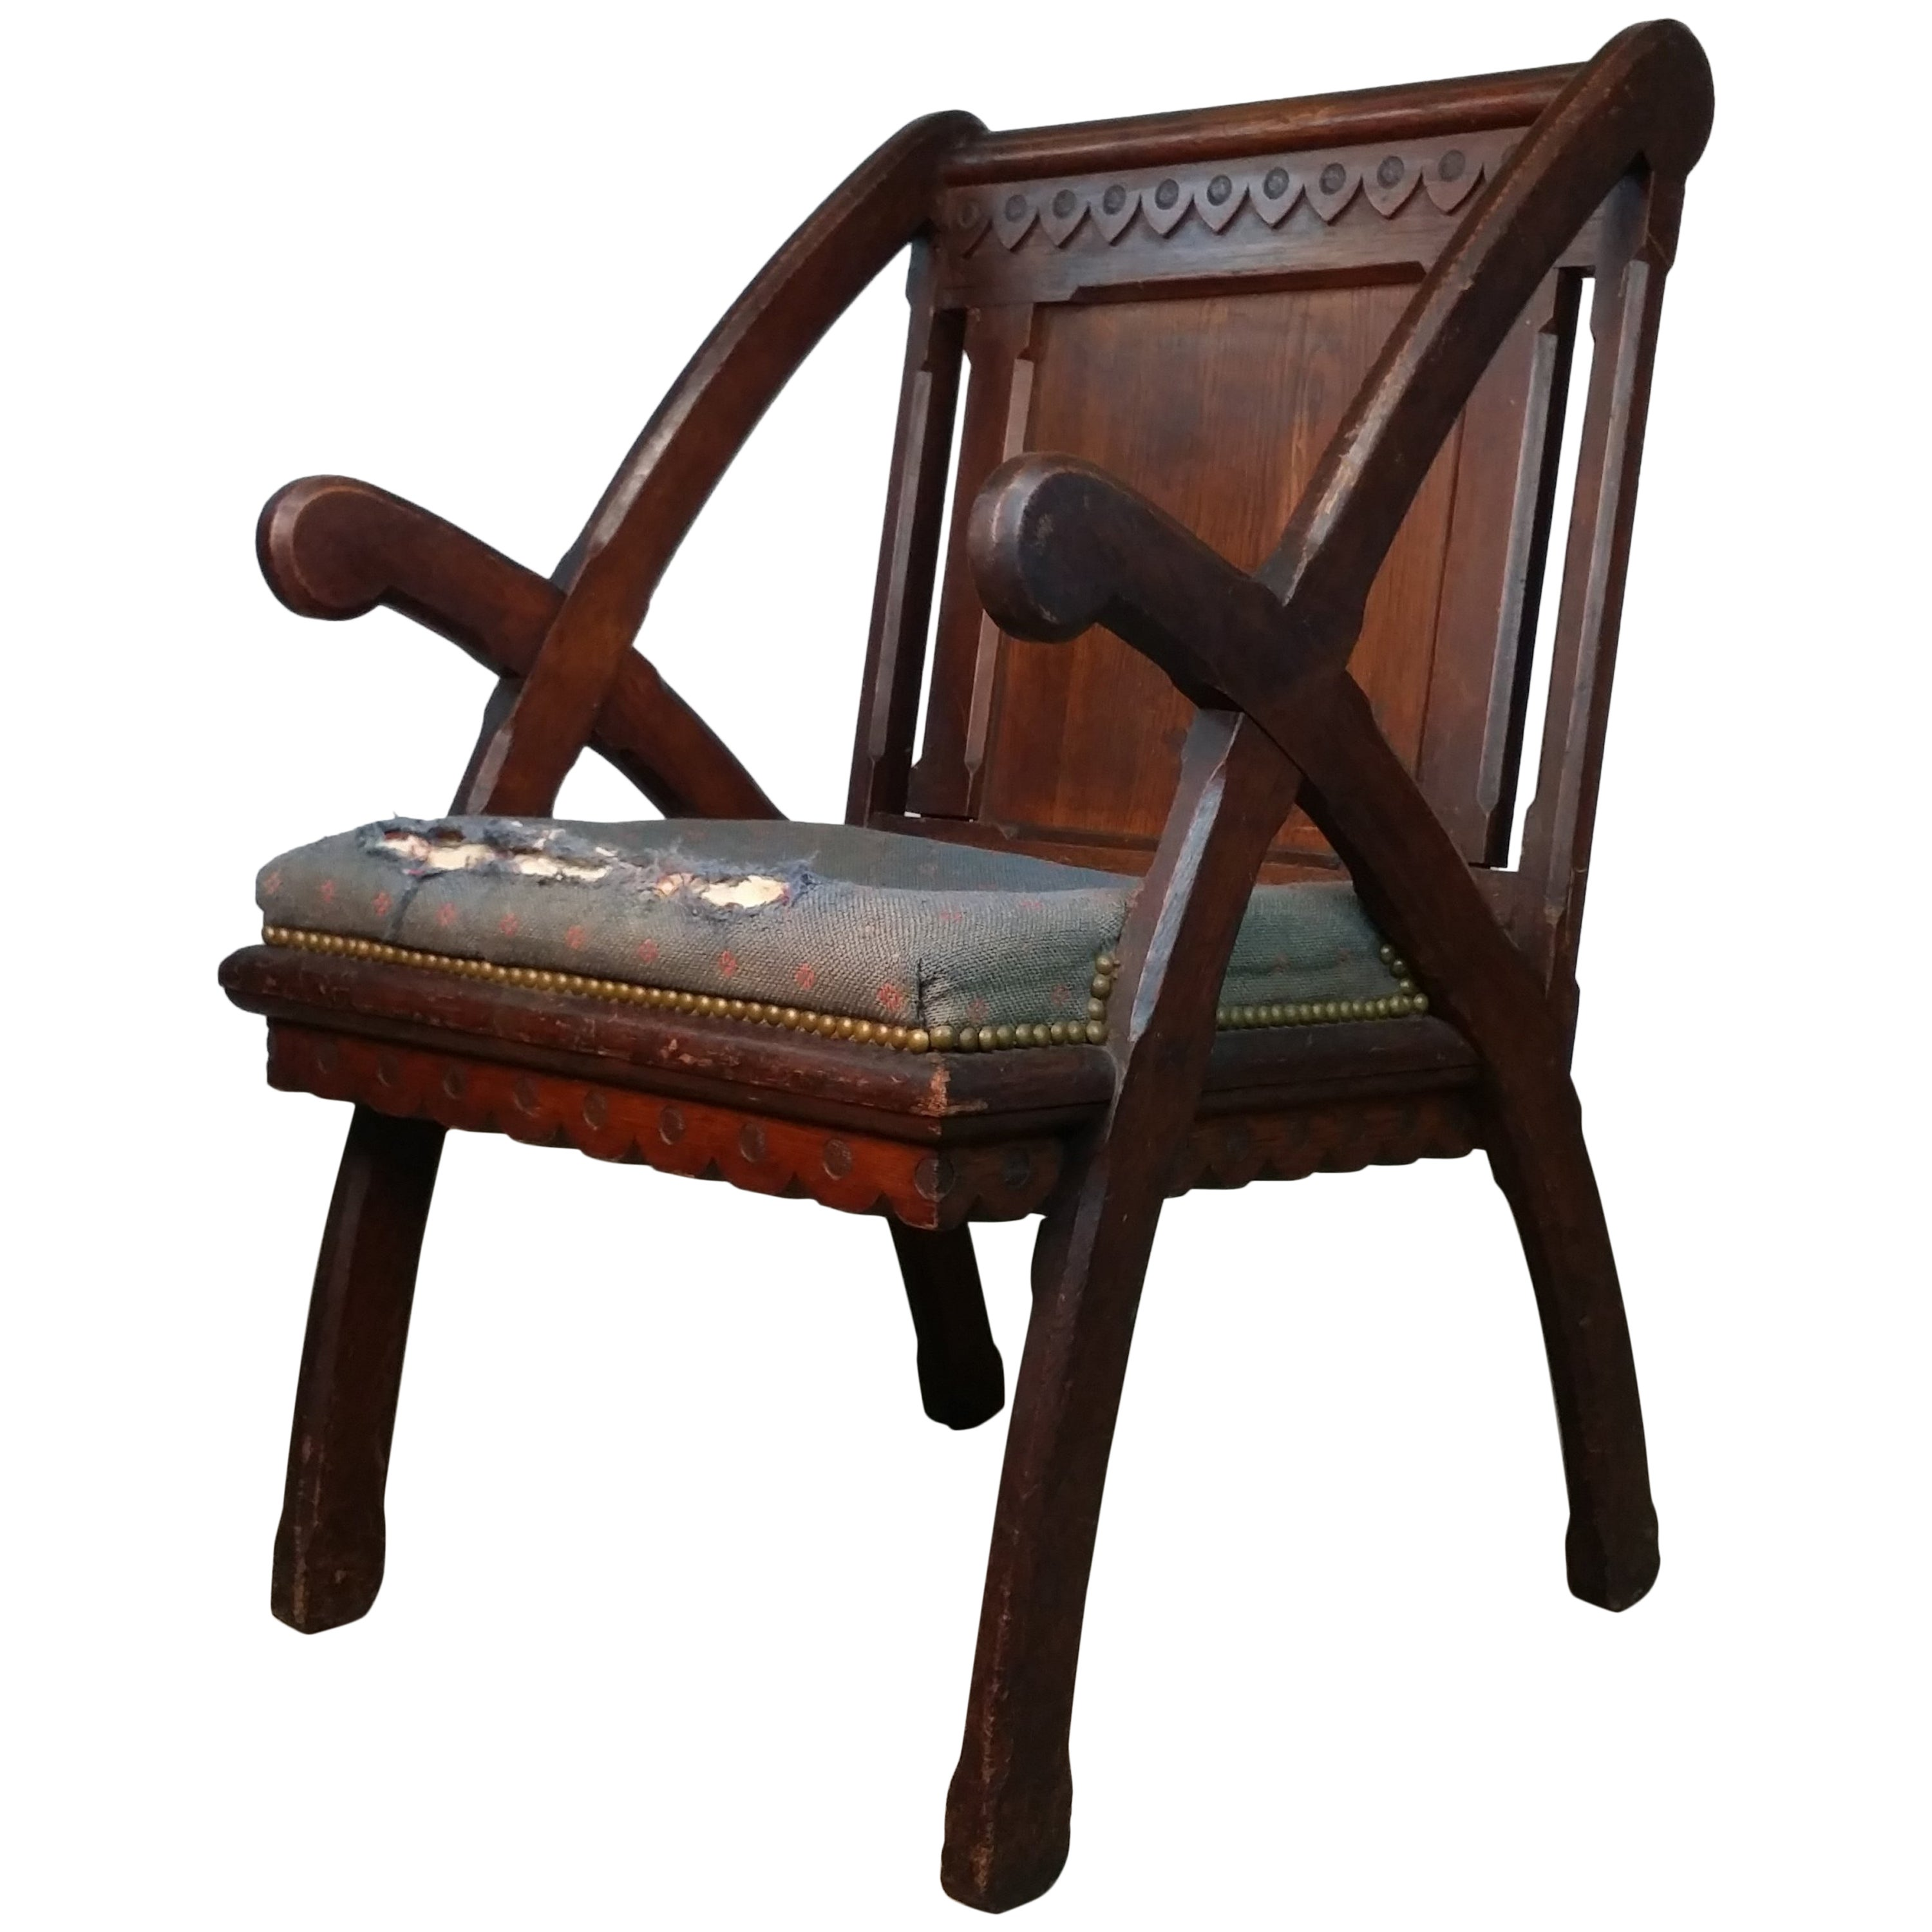 Chair Designed by Architect H. H. Richardson